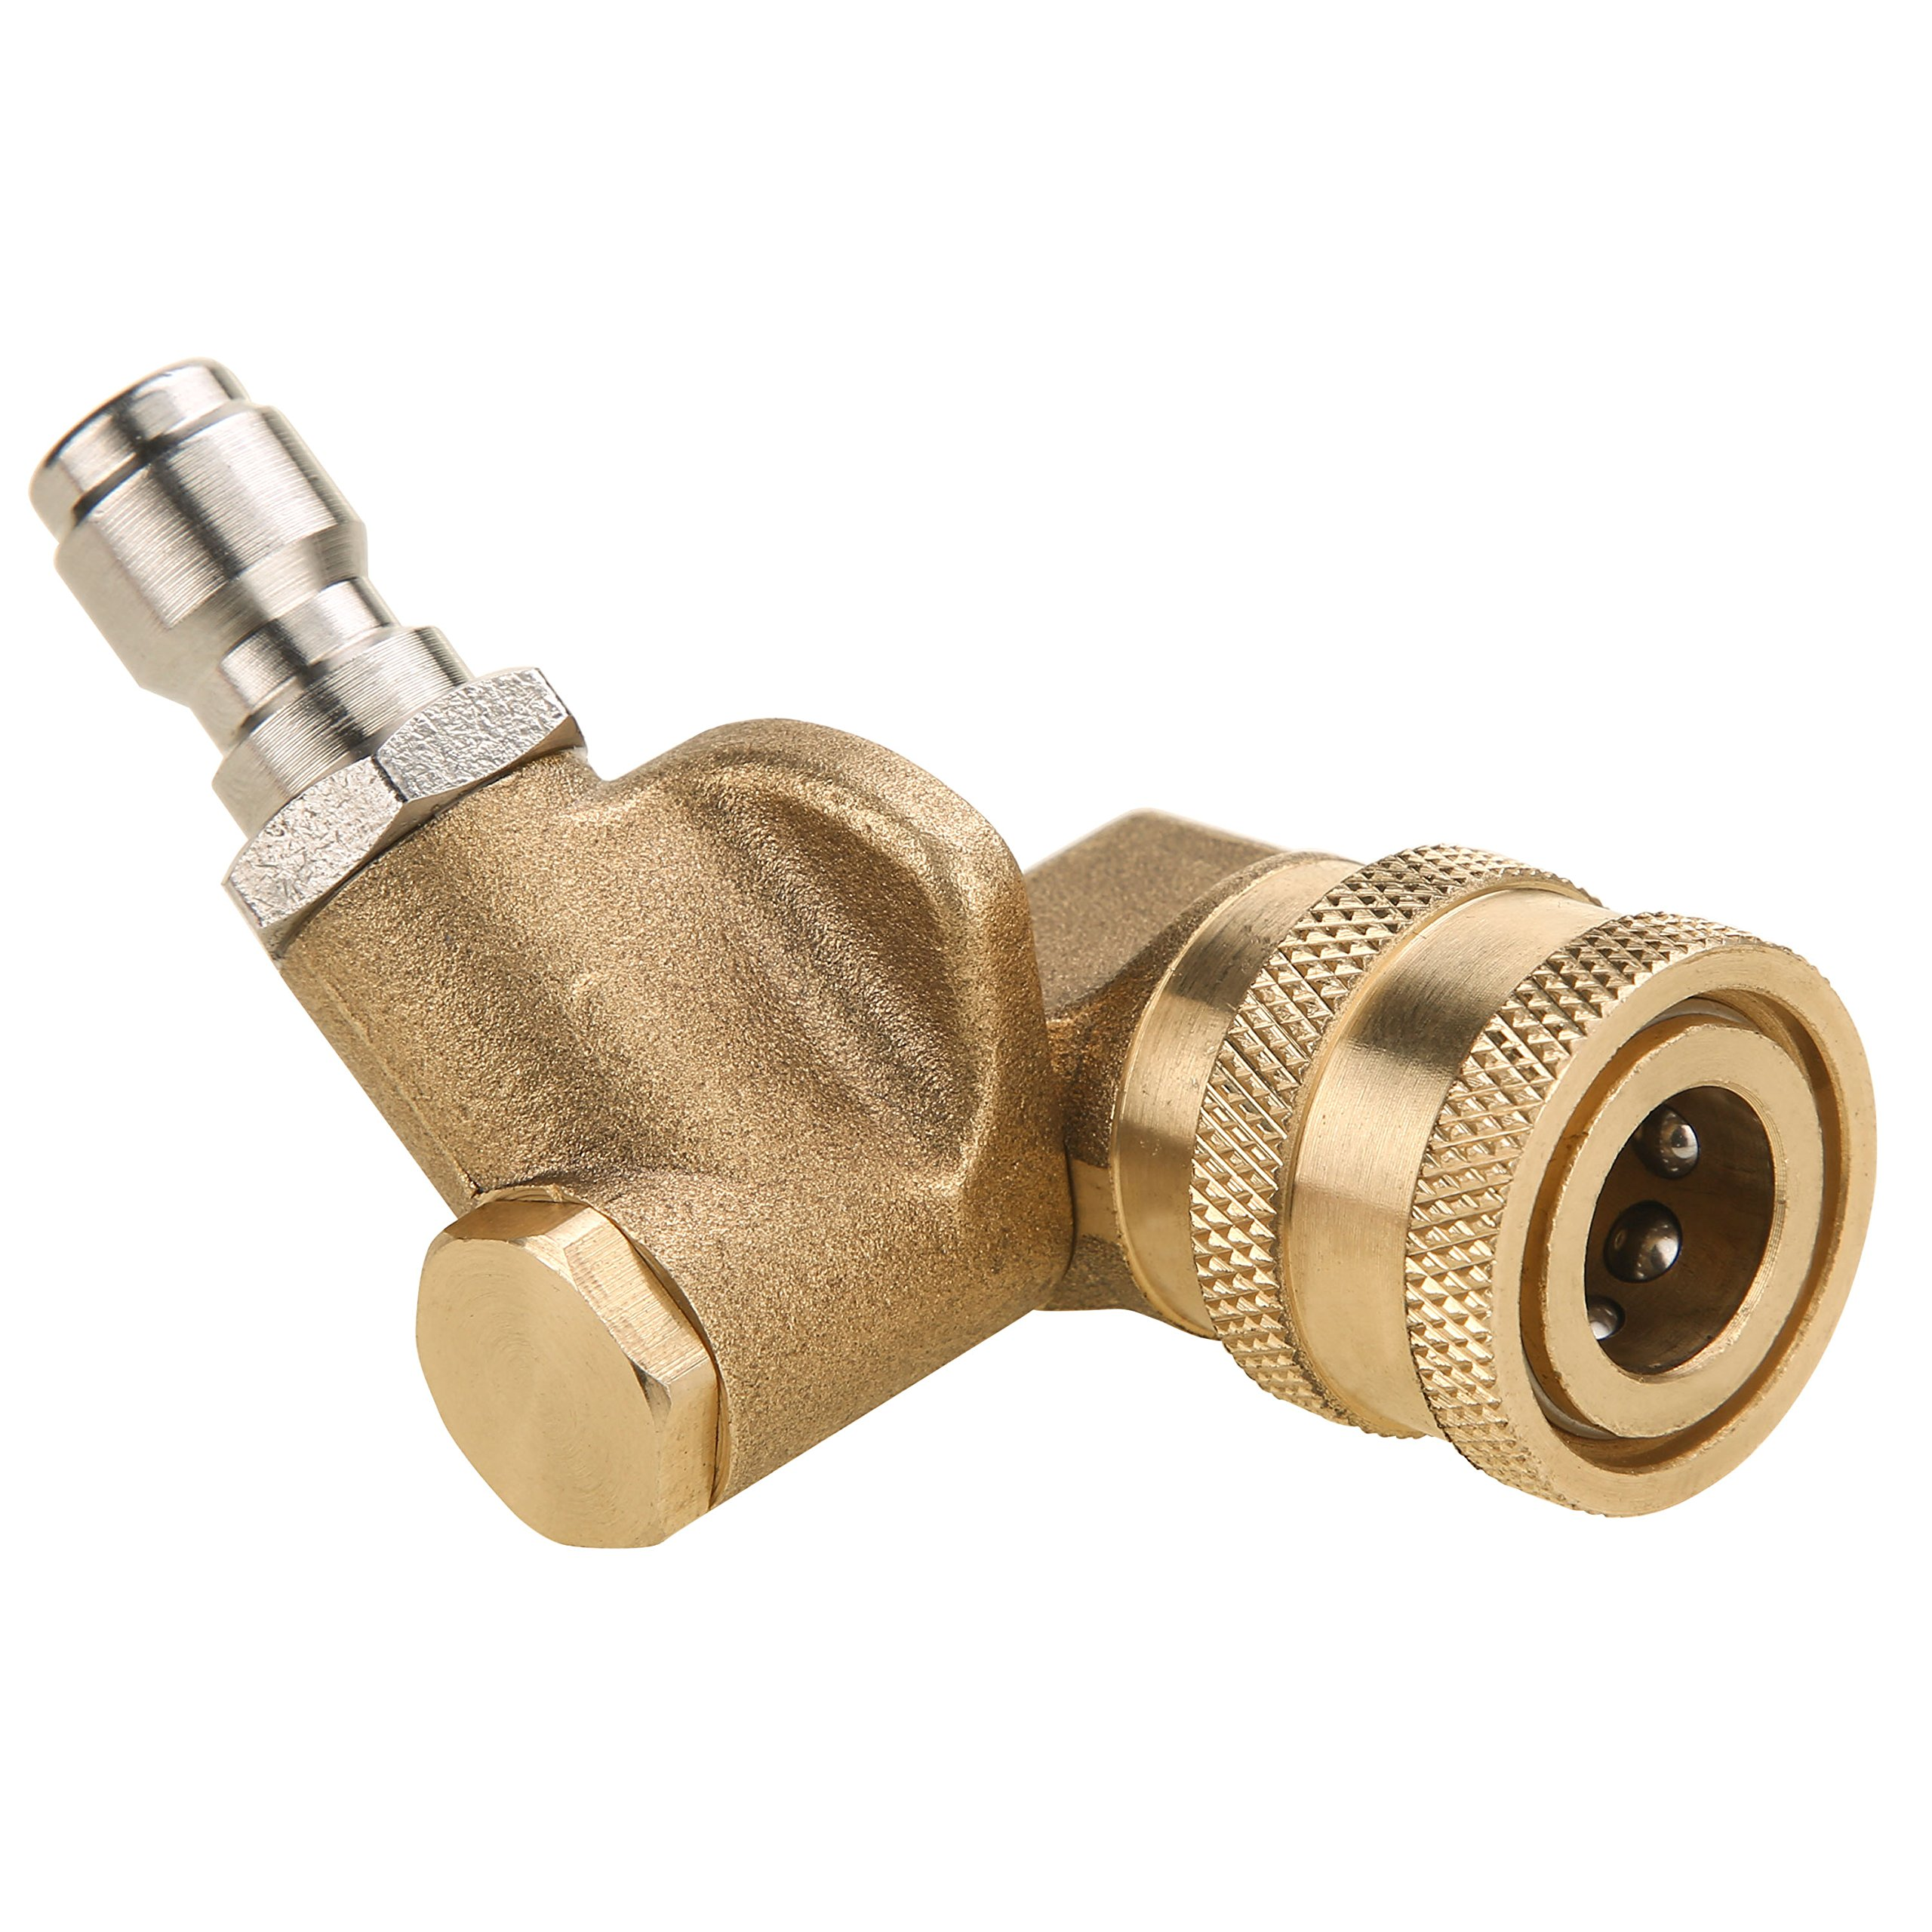 "Tool Daily Quick Connecting Pivoting Coupler for Pressure Washer Nozzle, Cleaning Hard to Reach Areas, 4500 PSI 1/4"" Plug 90 Degree Rotation"